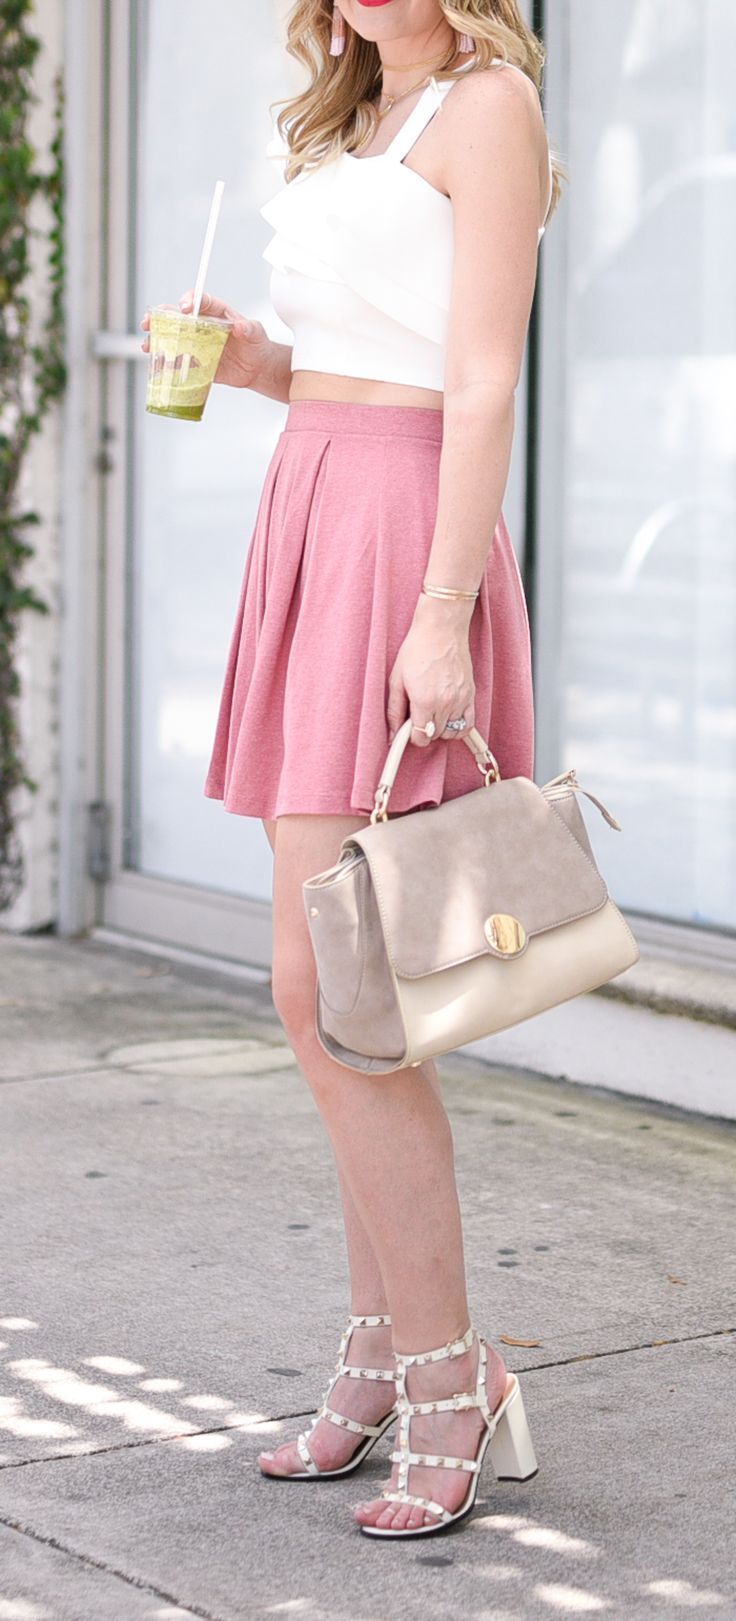 White crop top with a pink skater skirt and Valentino rockstud sandals for summer outfit ideas | what to wear | affordable style